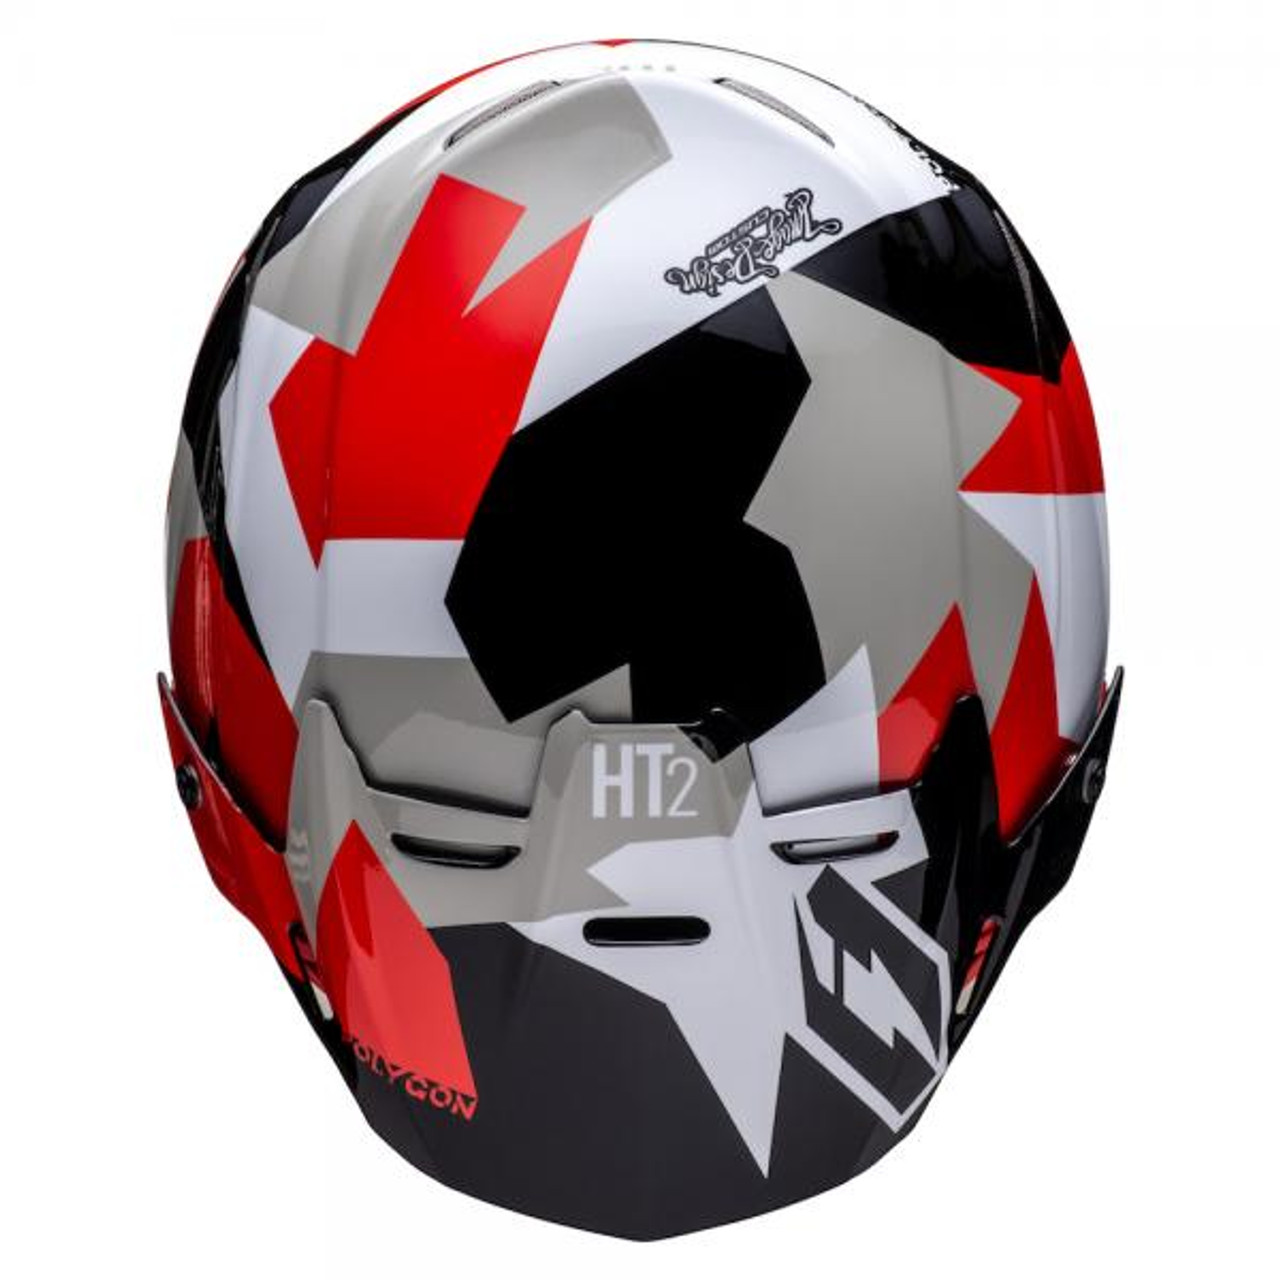 Helmet HT2 Polygon, black/red/white